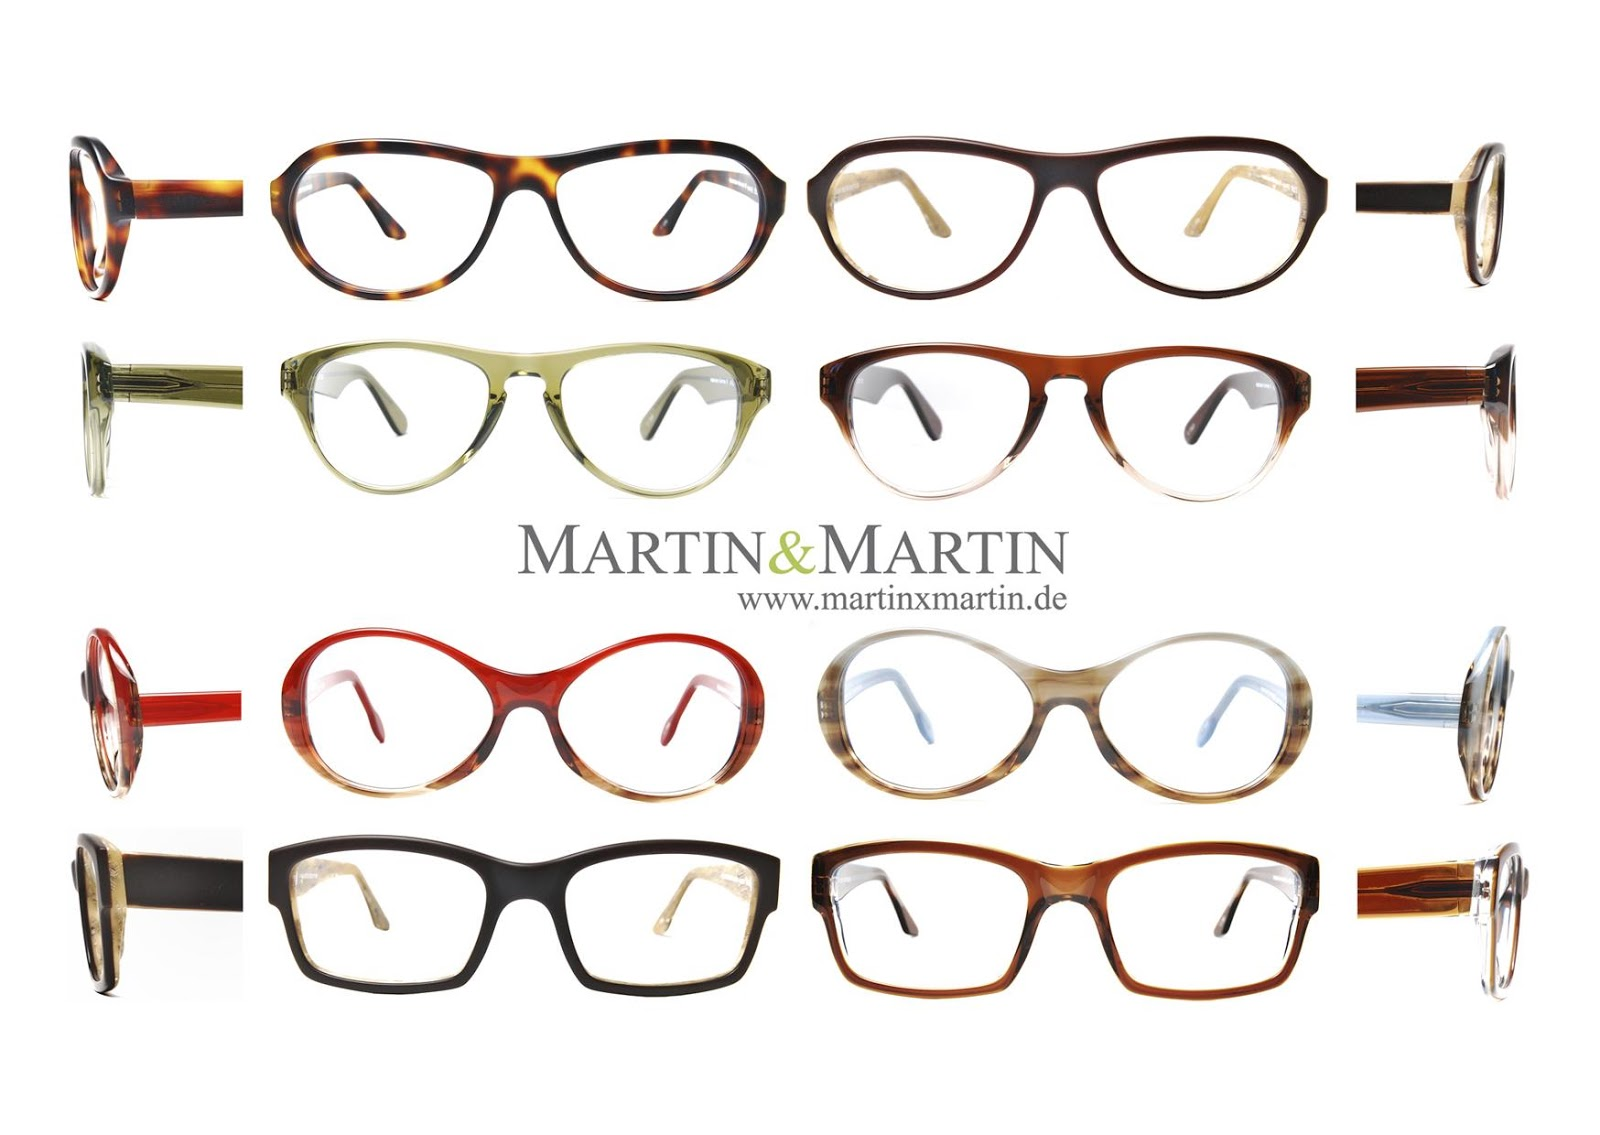 Michael Holmes Premium Eyewear: New Martin & Martin Just Arrived